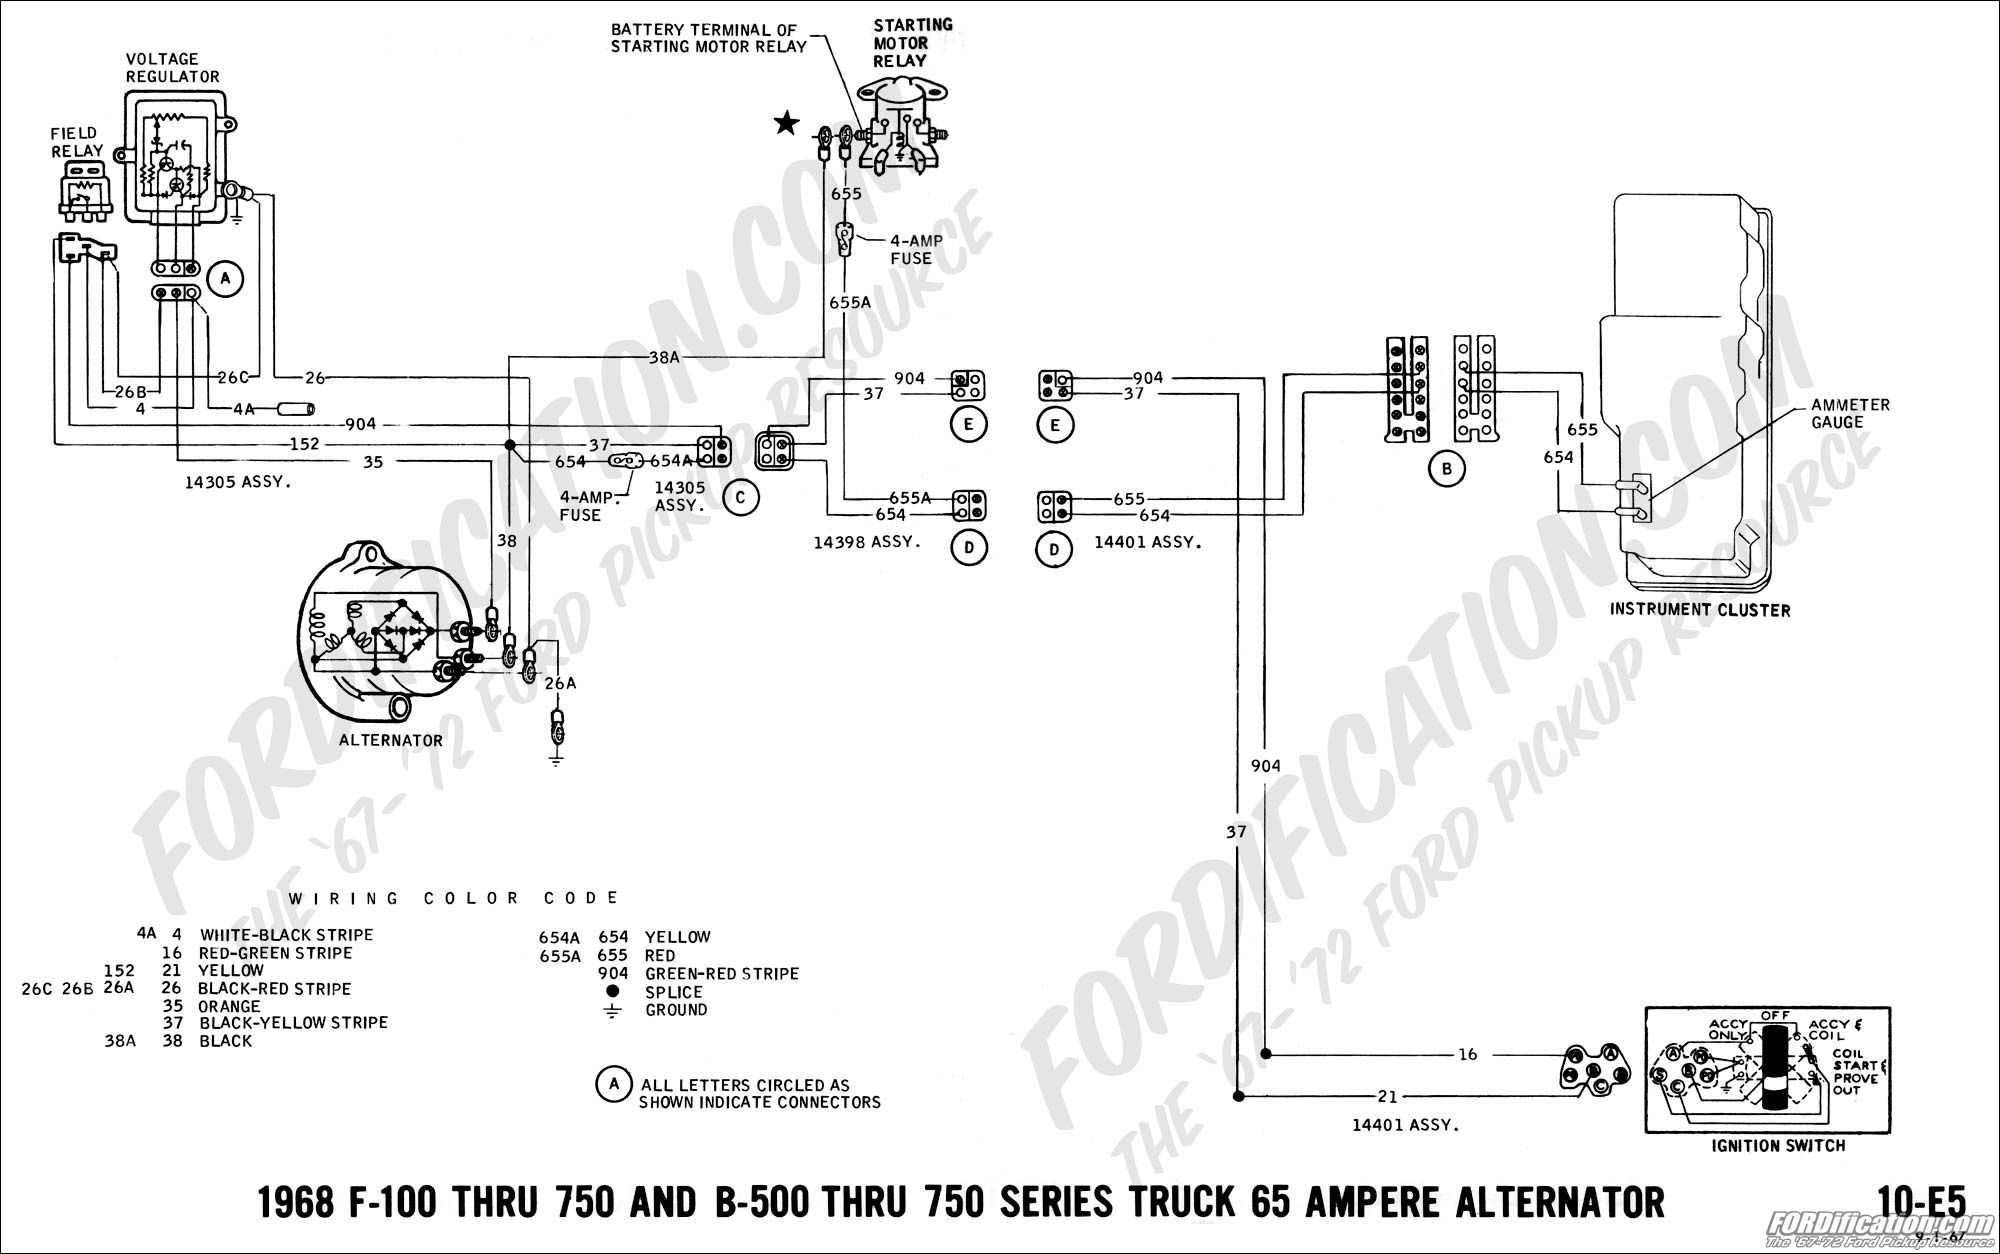 1982 ford alternator wiring we wiring diagram Amp Wiring Diagram 1971 ford alternator wiring wiring diagram all data dodge alternator wiring 1982 ford alternator wiring